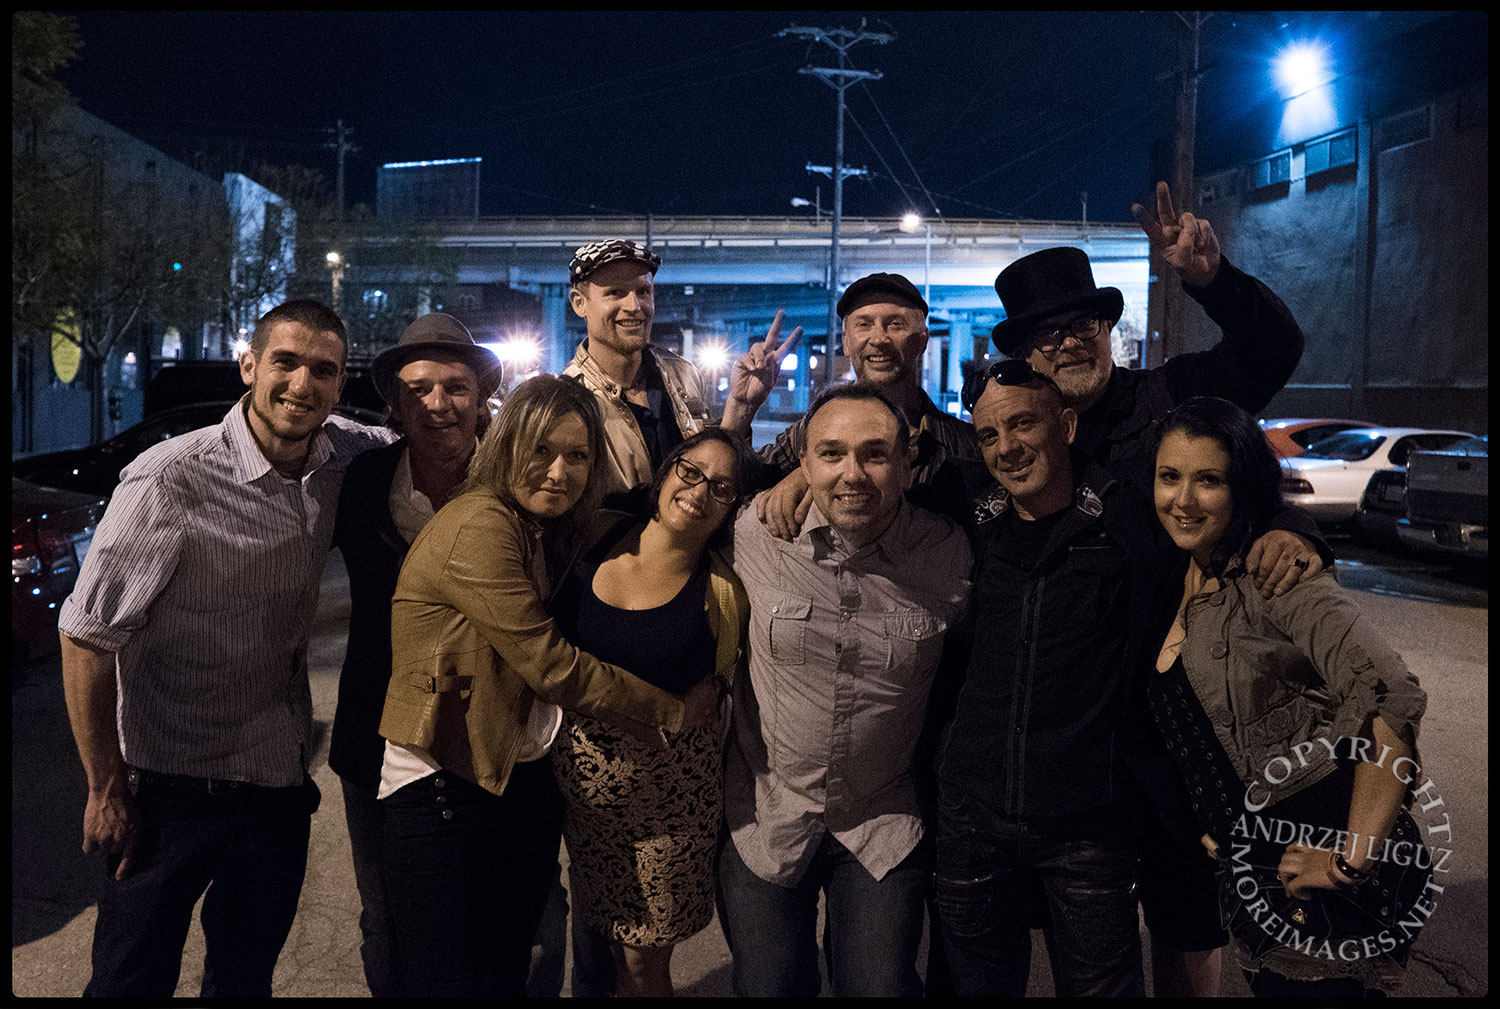 The crew with Curtis on his 40th birthday, Stanton Warriors gig, Mighty nightclub, San Francisco, CA 2015-03-13